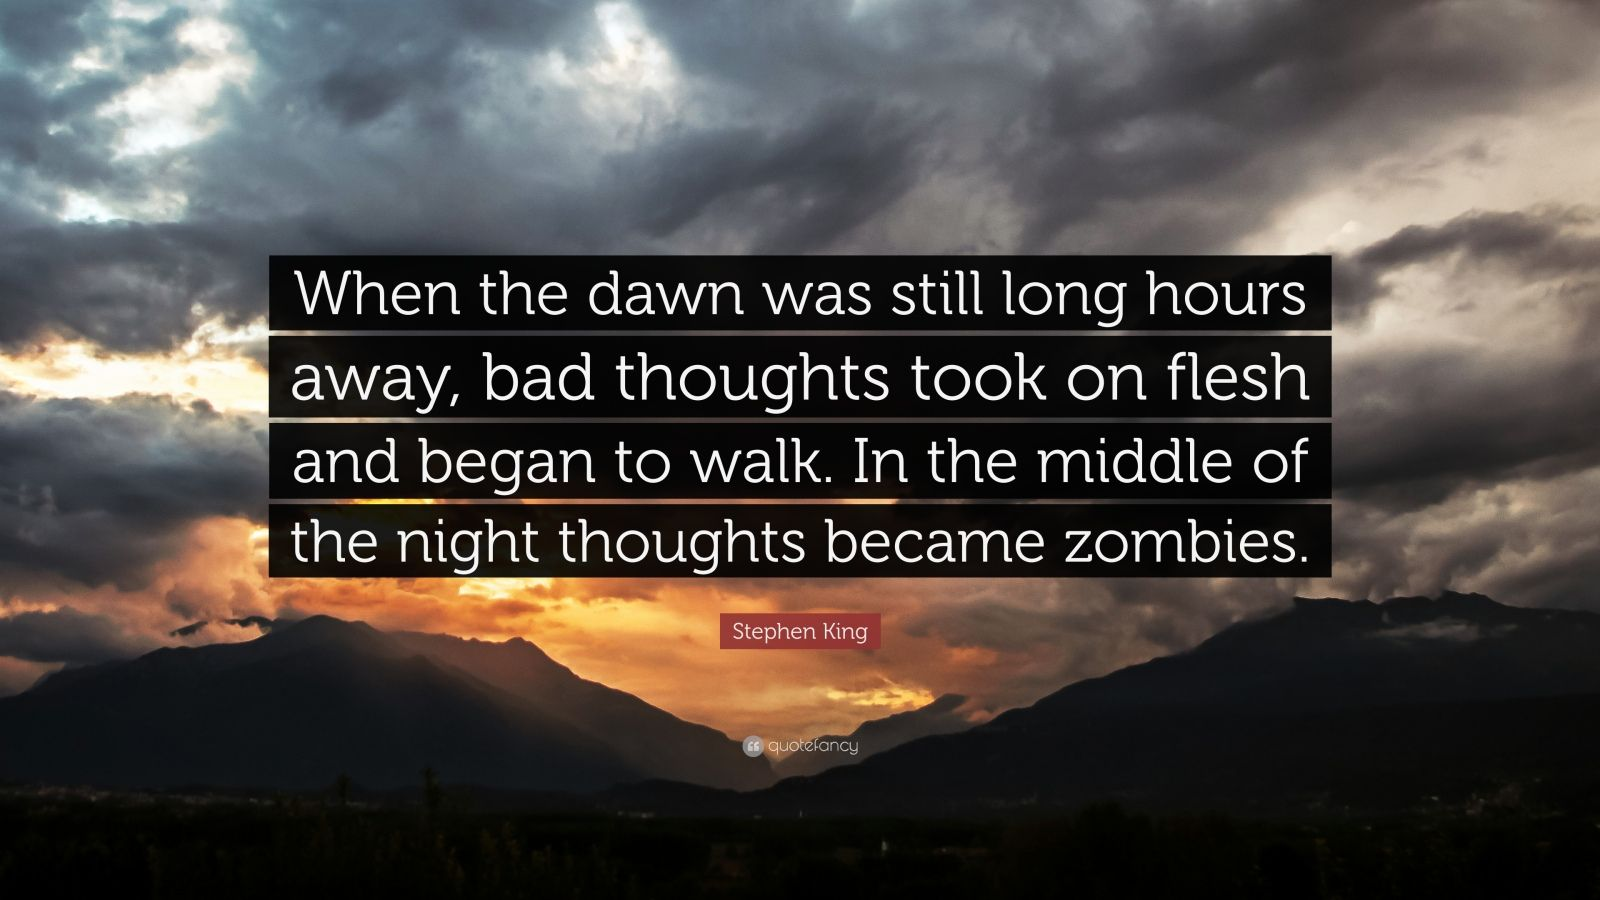 """Stephen King Quote: """"When the dawn was still long hours away, bad thoughts took on flesh and began to walk. In the middle of the night thoughts became zombies."""""""